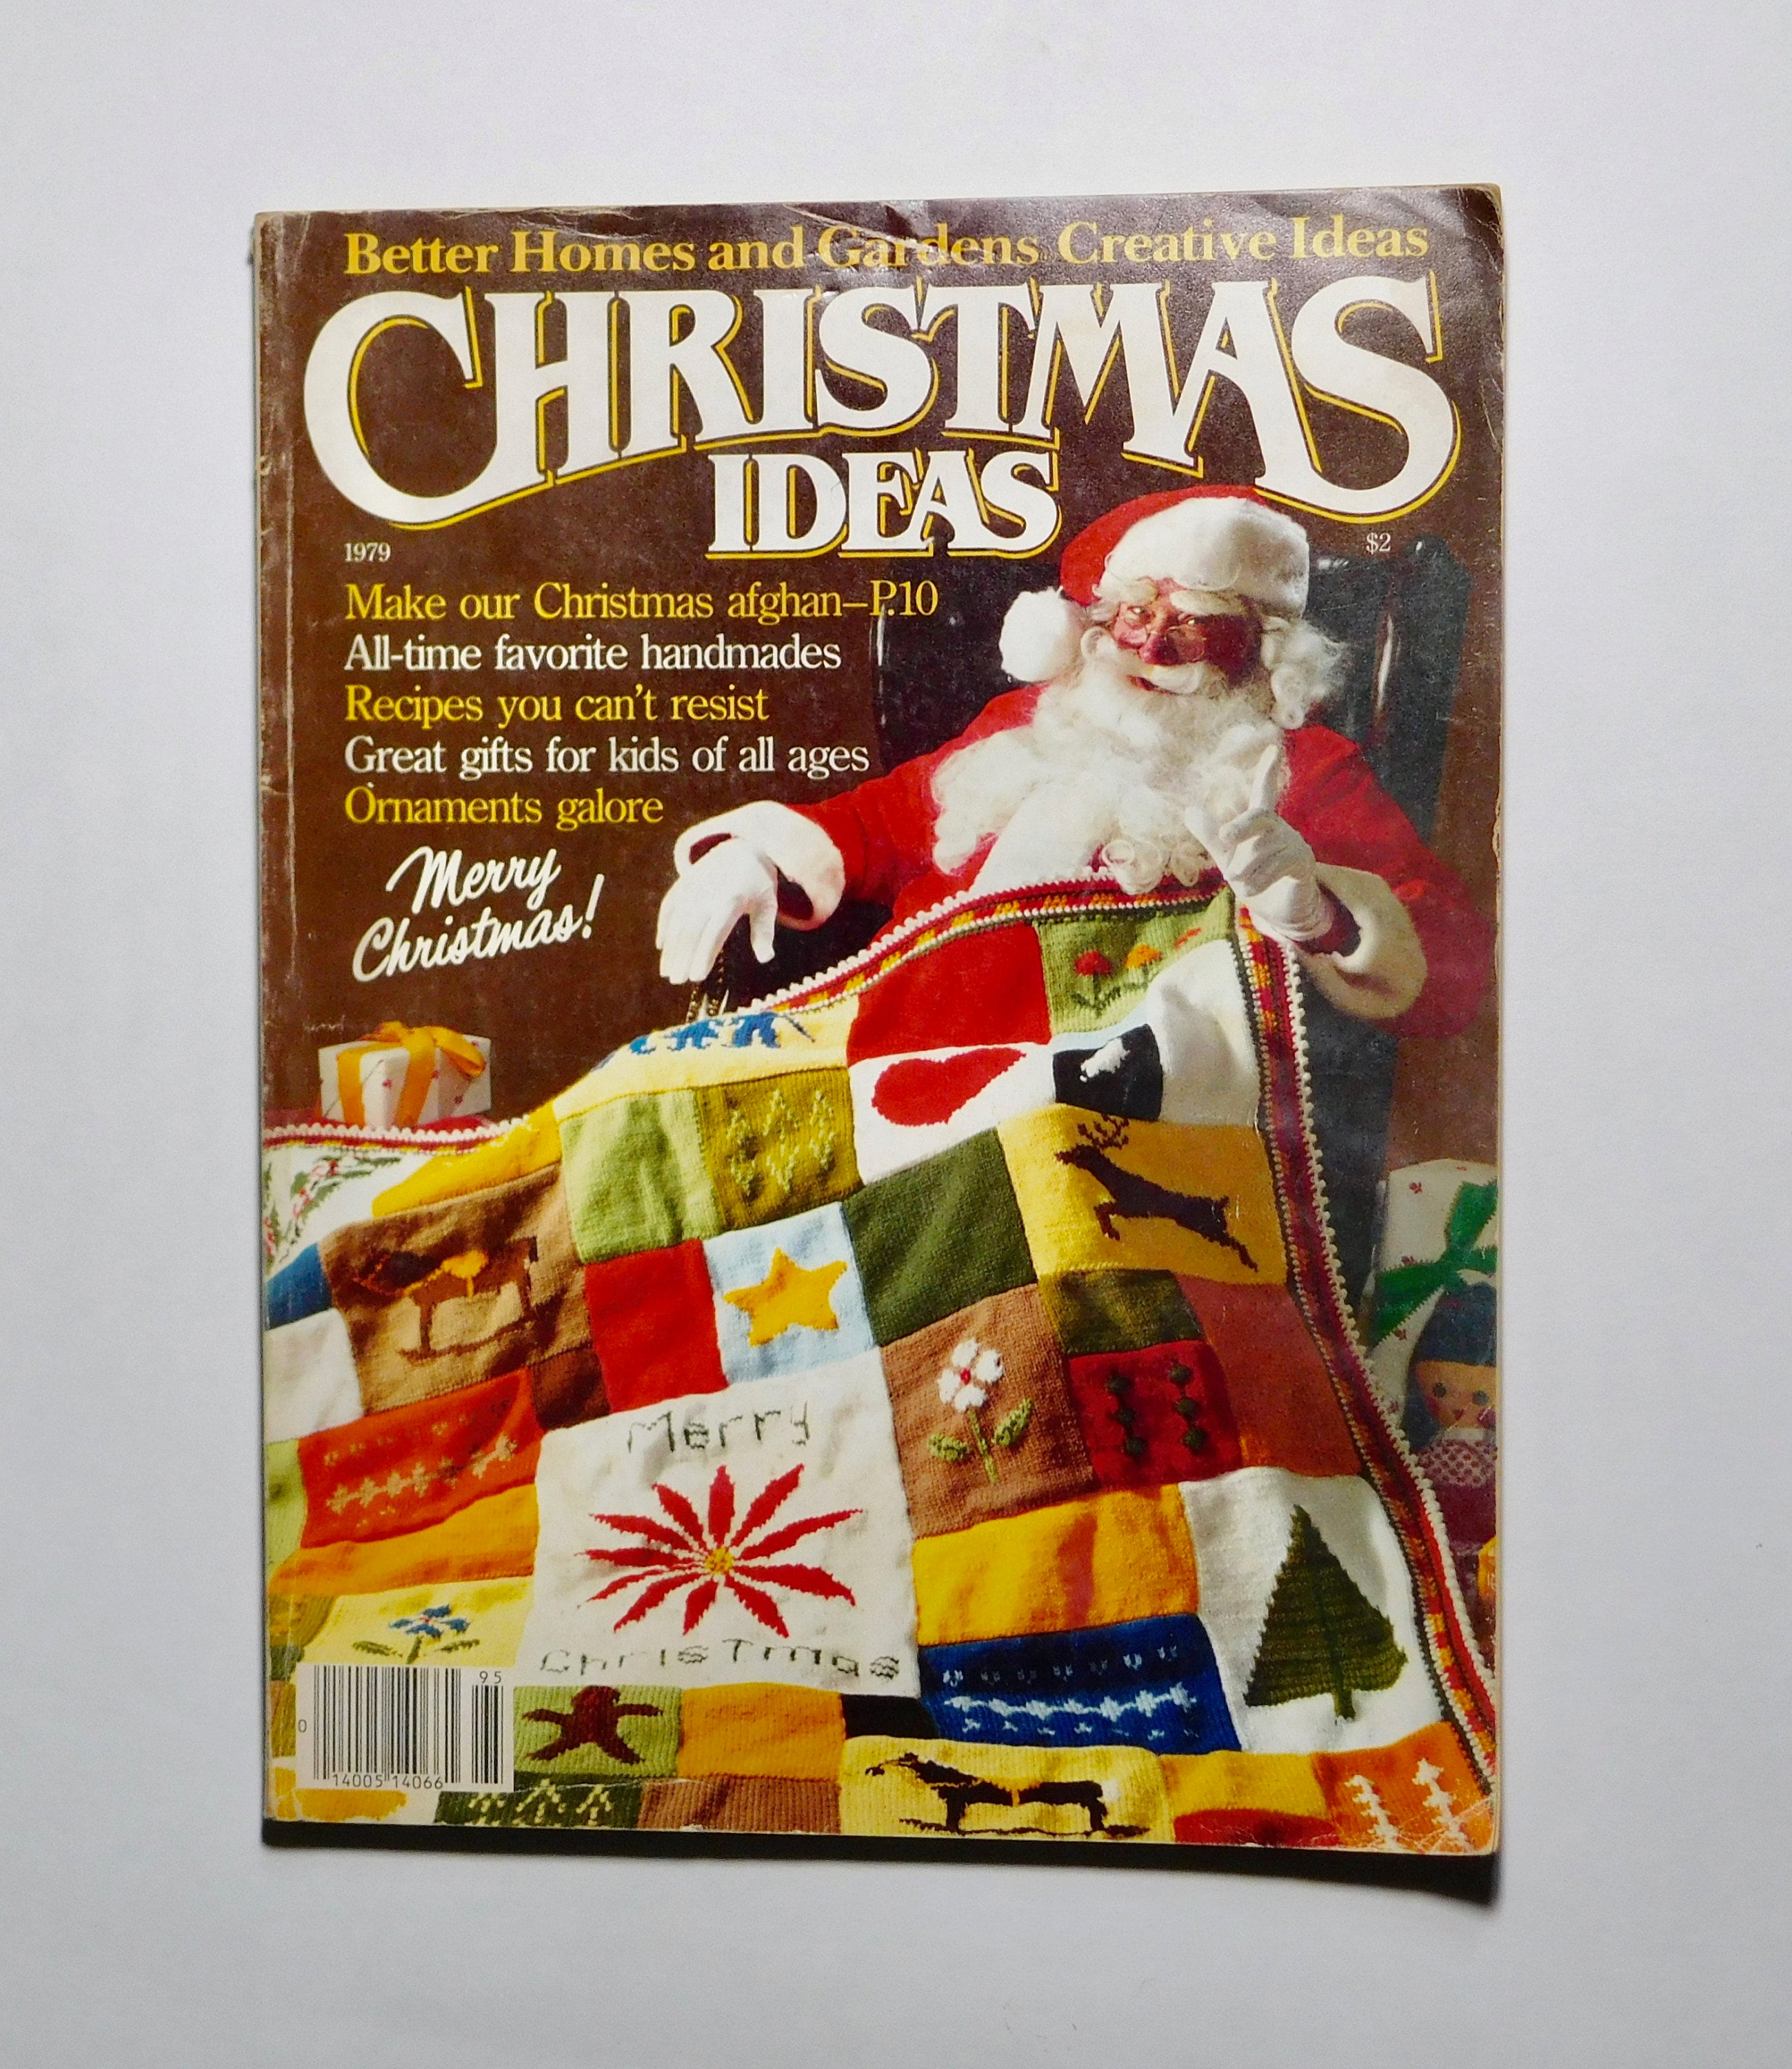 BHG Christmas Ideas 1979 Better Homes & Gardens Creative Ideas